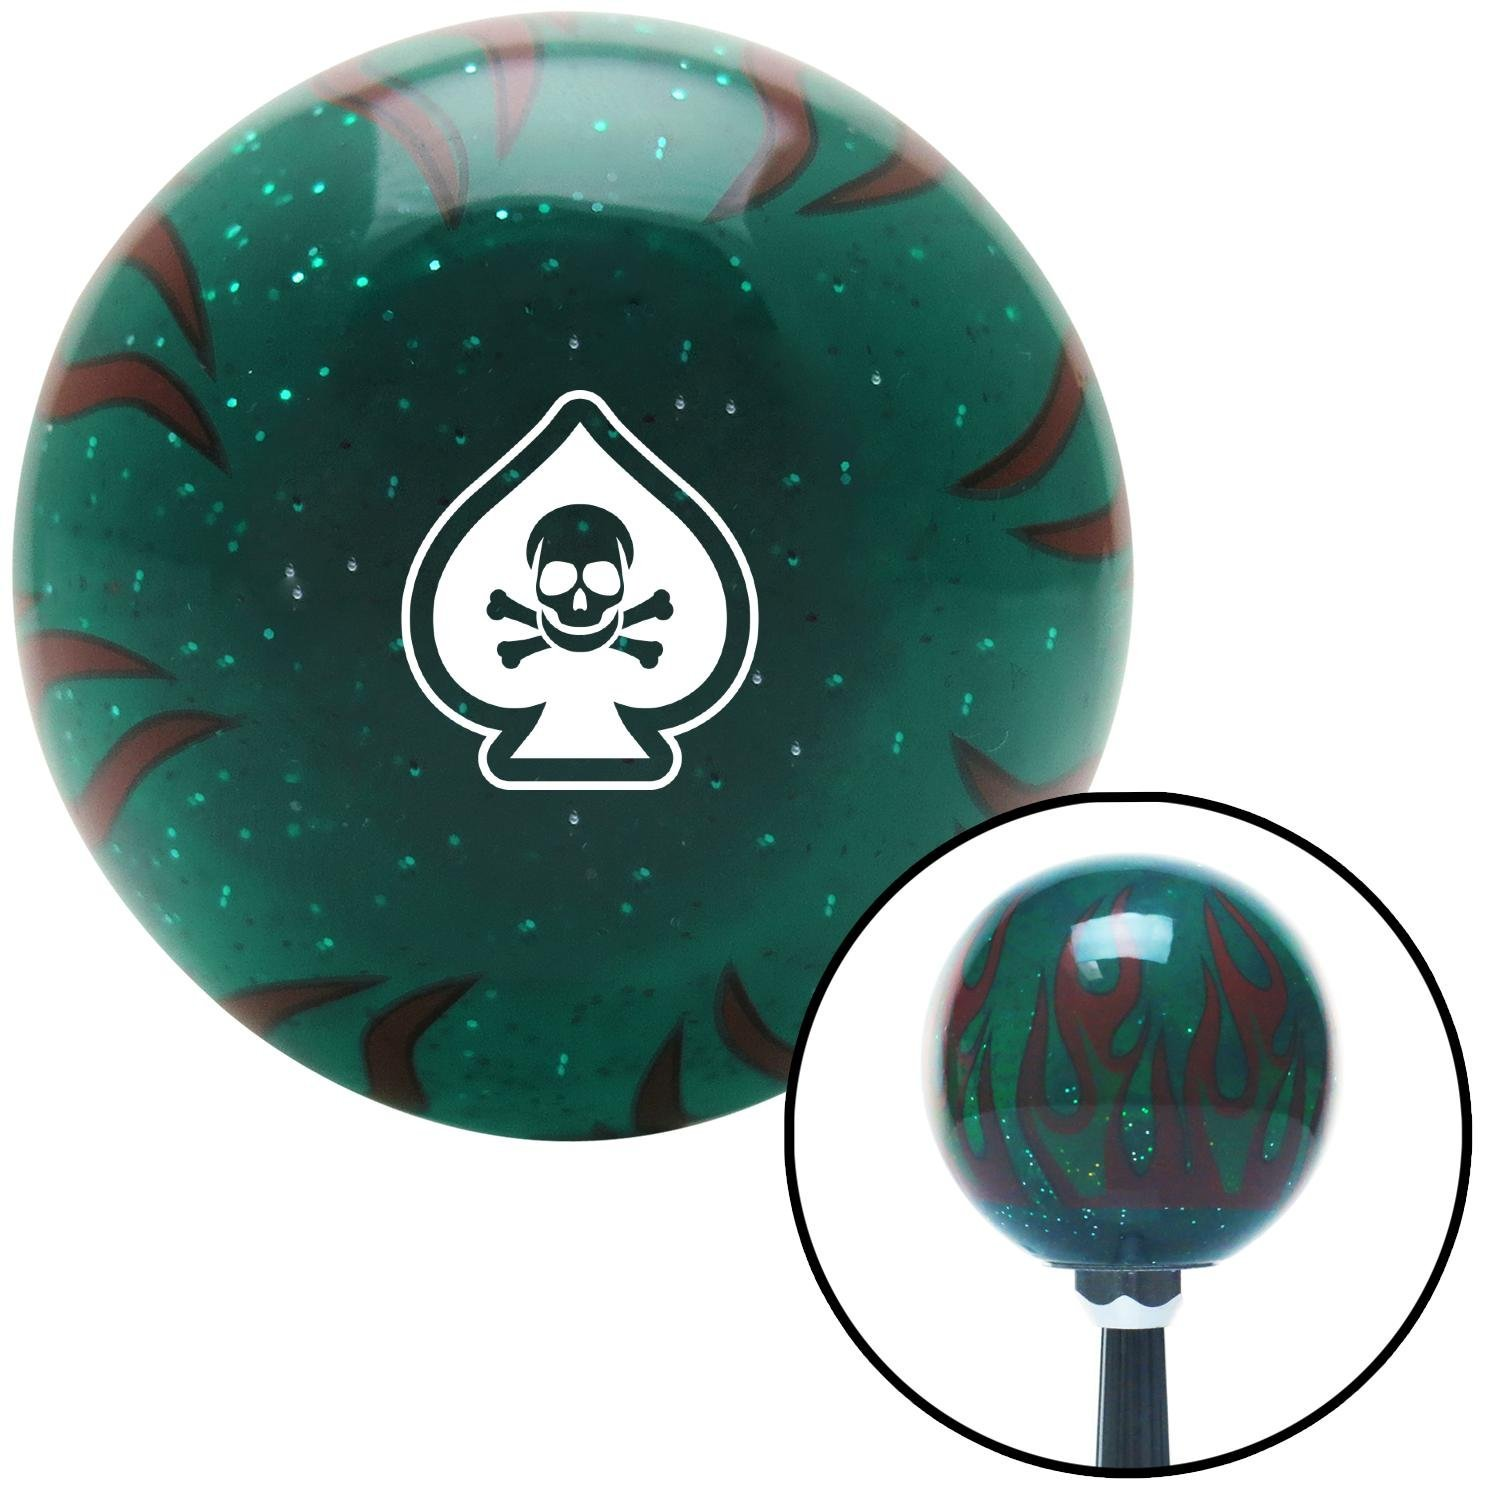 American Shifter 300827 Shift Knob White Spade Skull Green Flame Metal Flake with M16 x 1.5 Insert